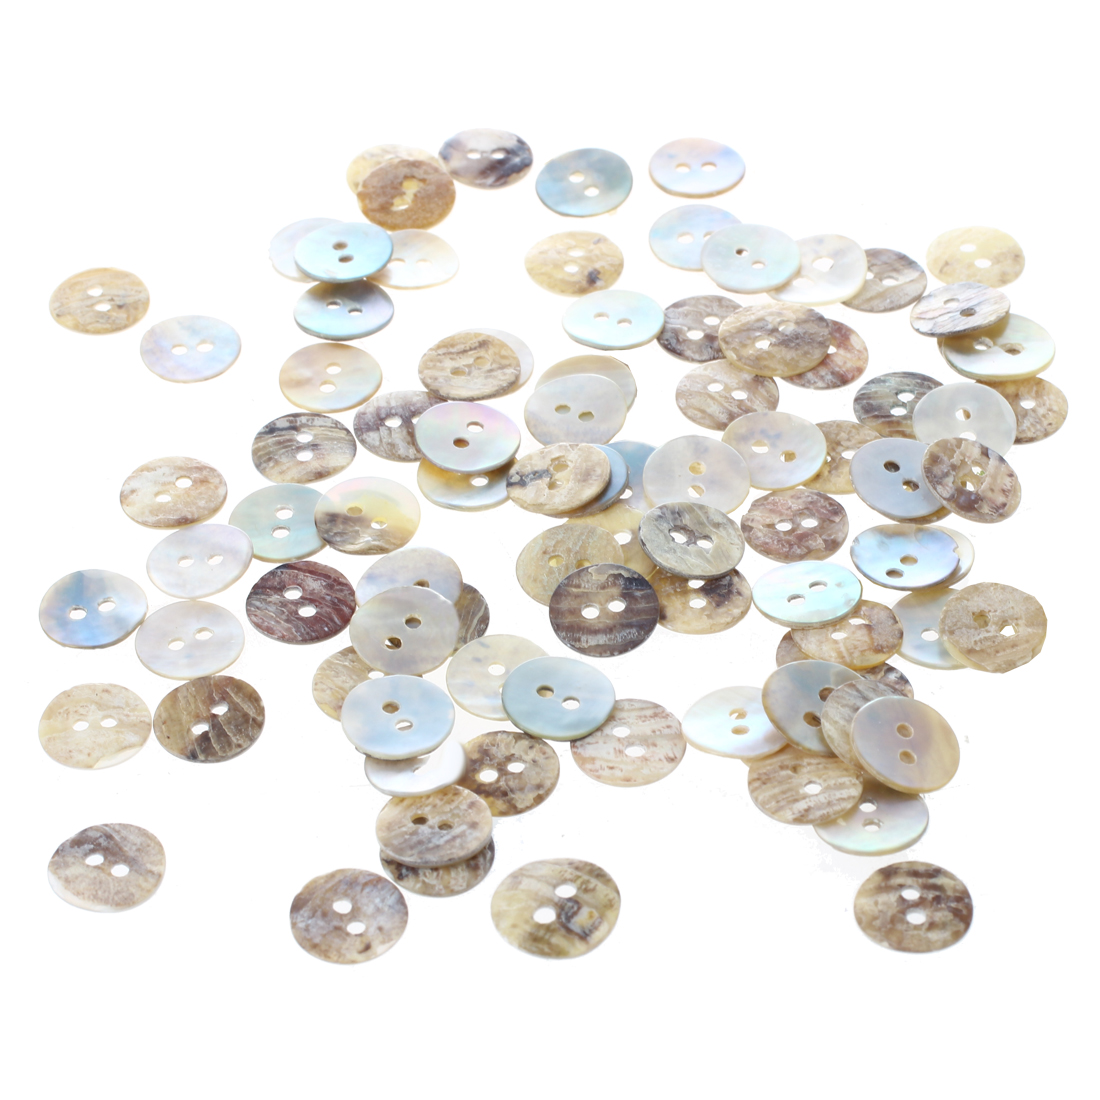 NHBR 100 pcs 10 mm Pearl Mussels Round Buttons